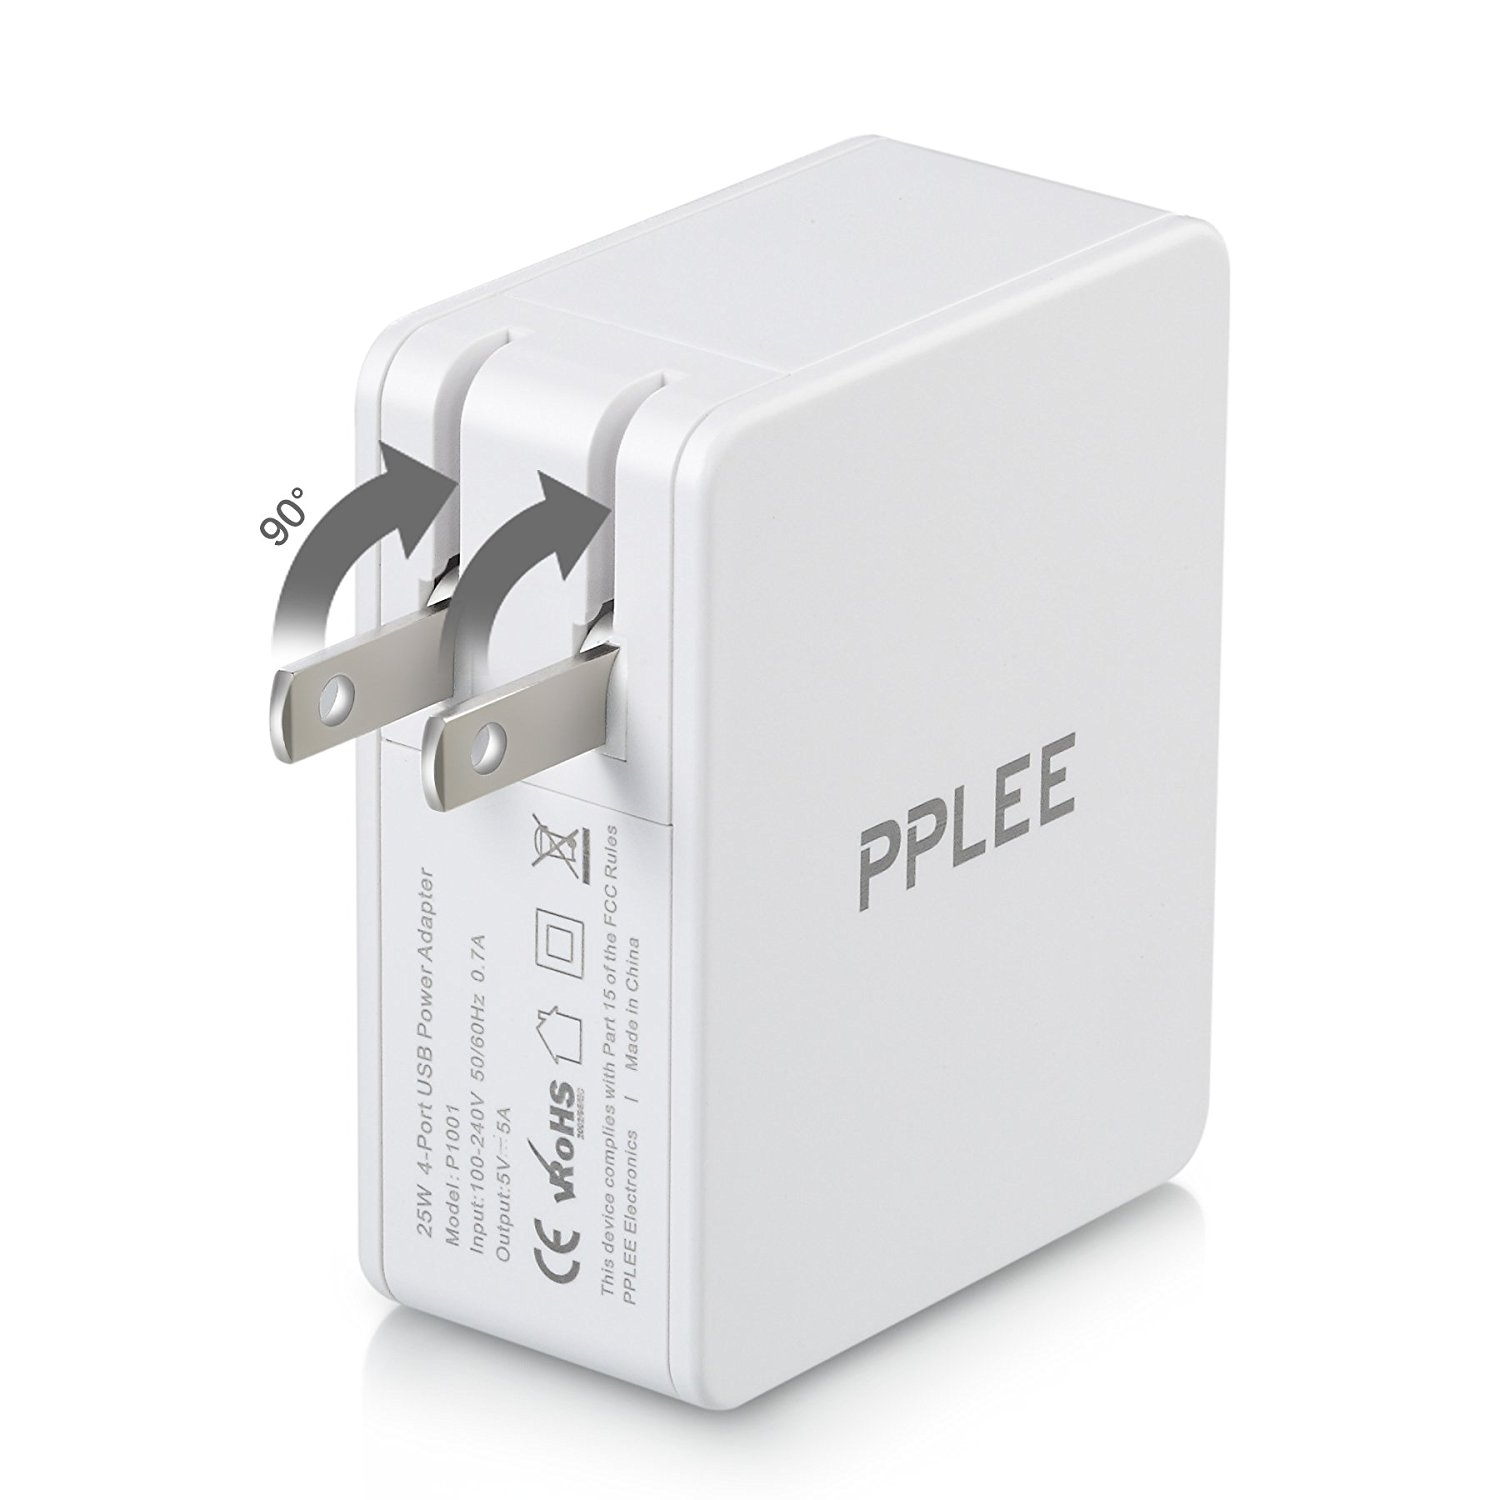 PPLEE 4 Port Charger High Speed Portable Travel USB Wall Charger Adapter White image 5